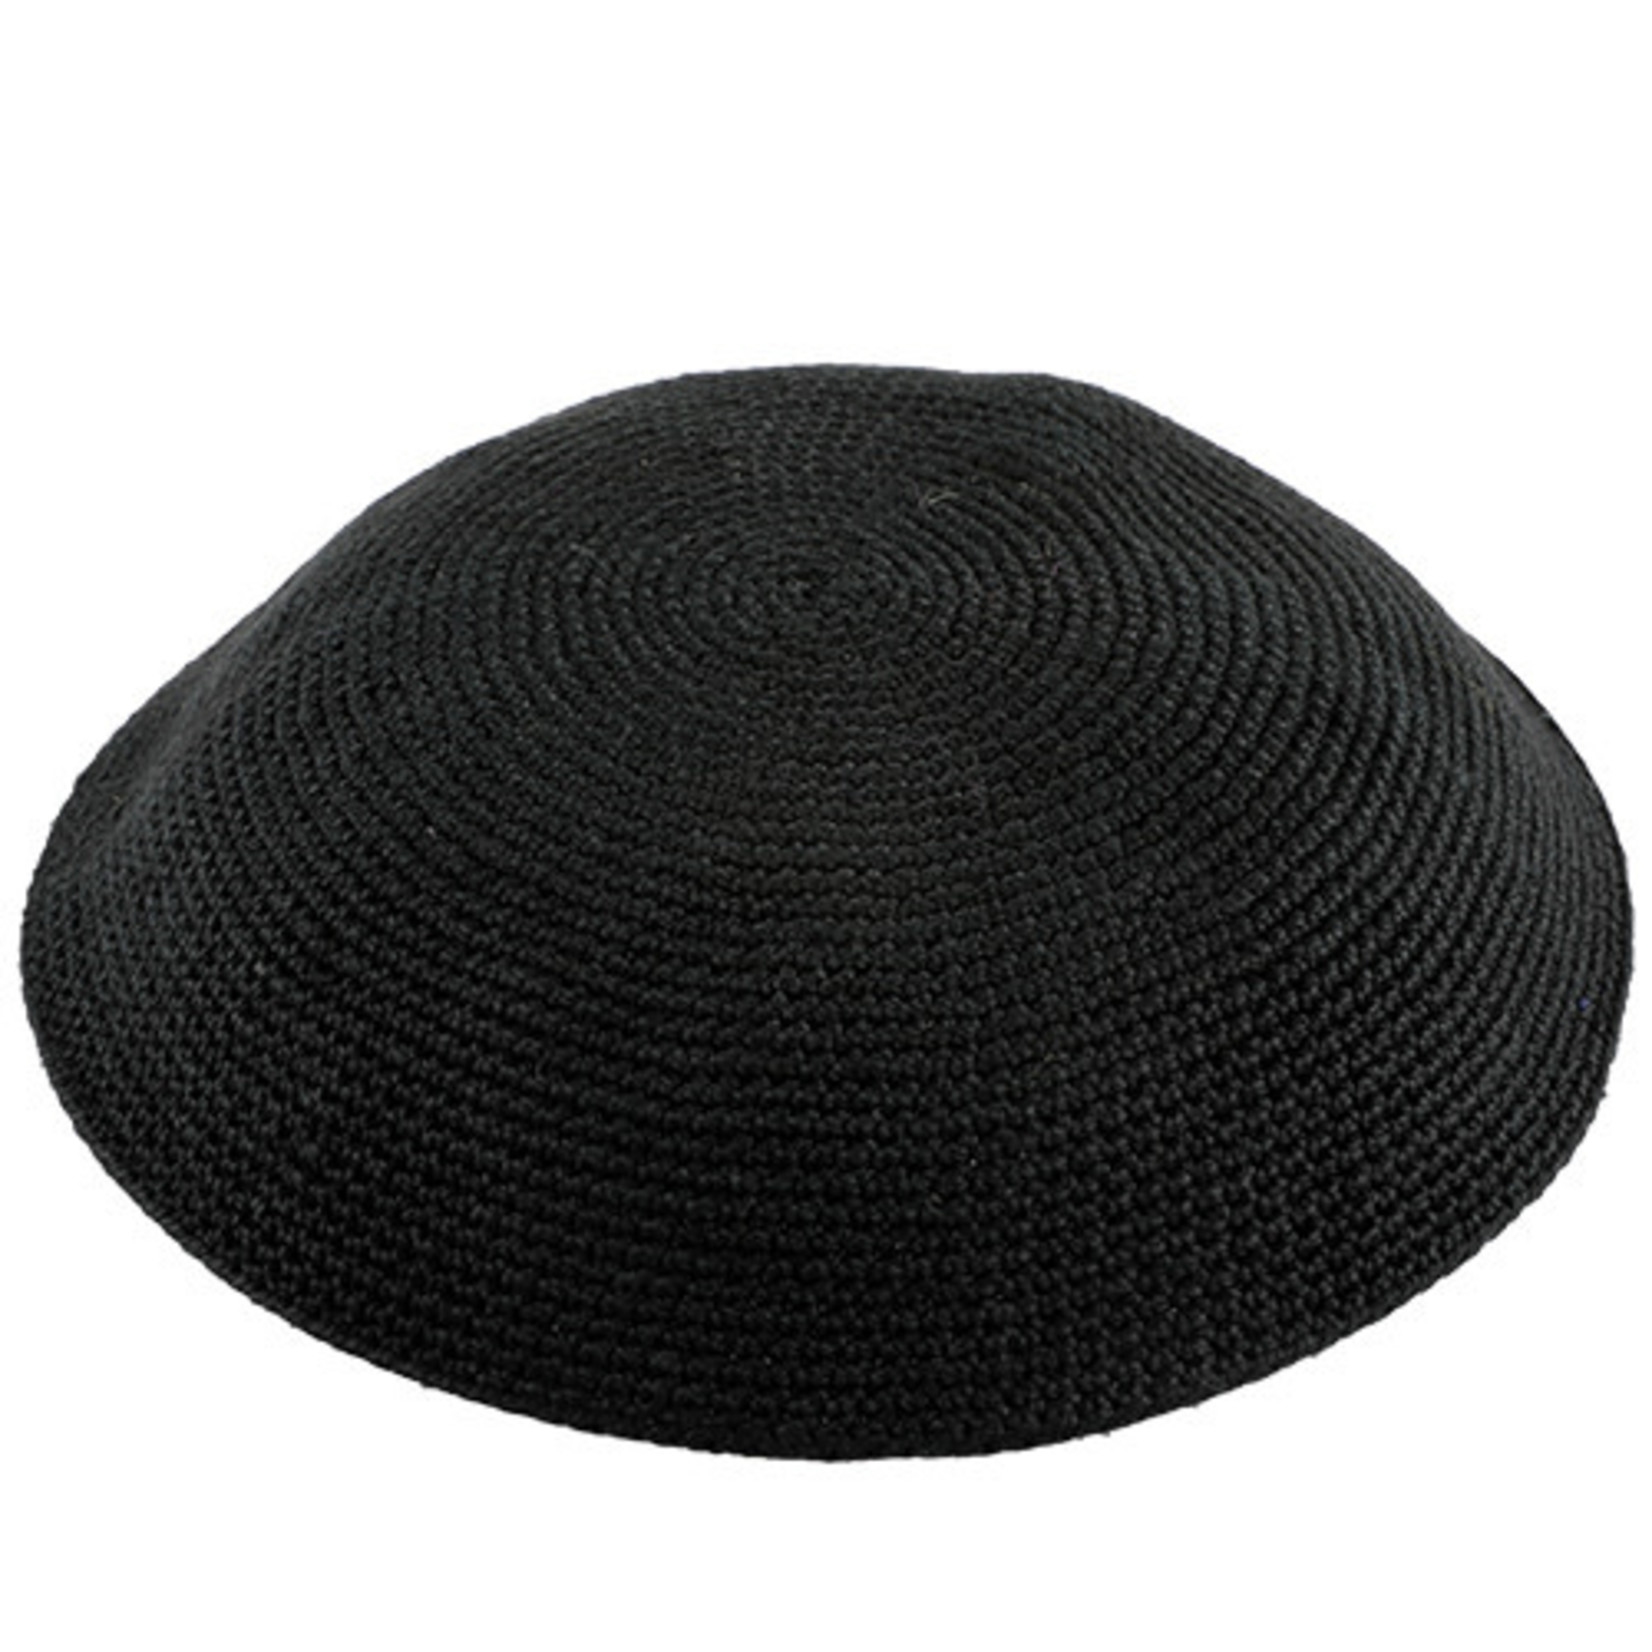 DMC Knit Kippah, Black, 16cm